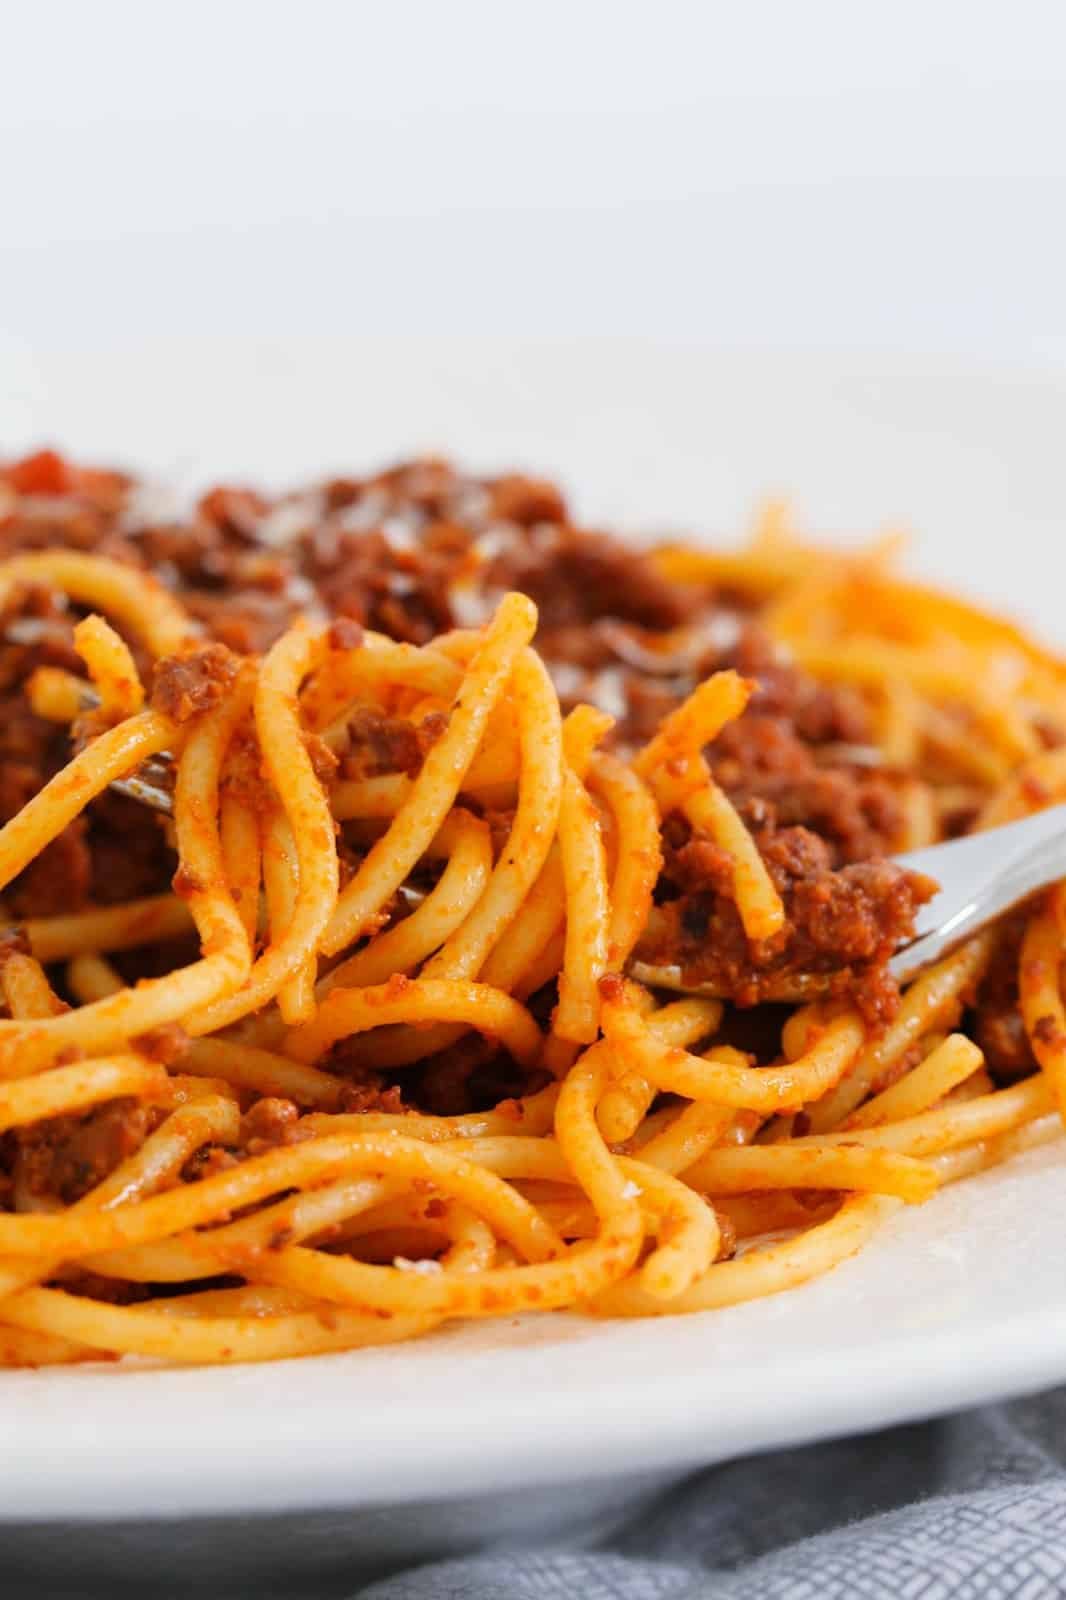 Spaghetti bolognese twirled around a fork in a bowl.